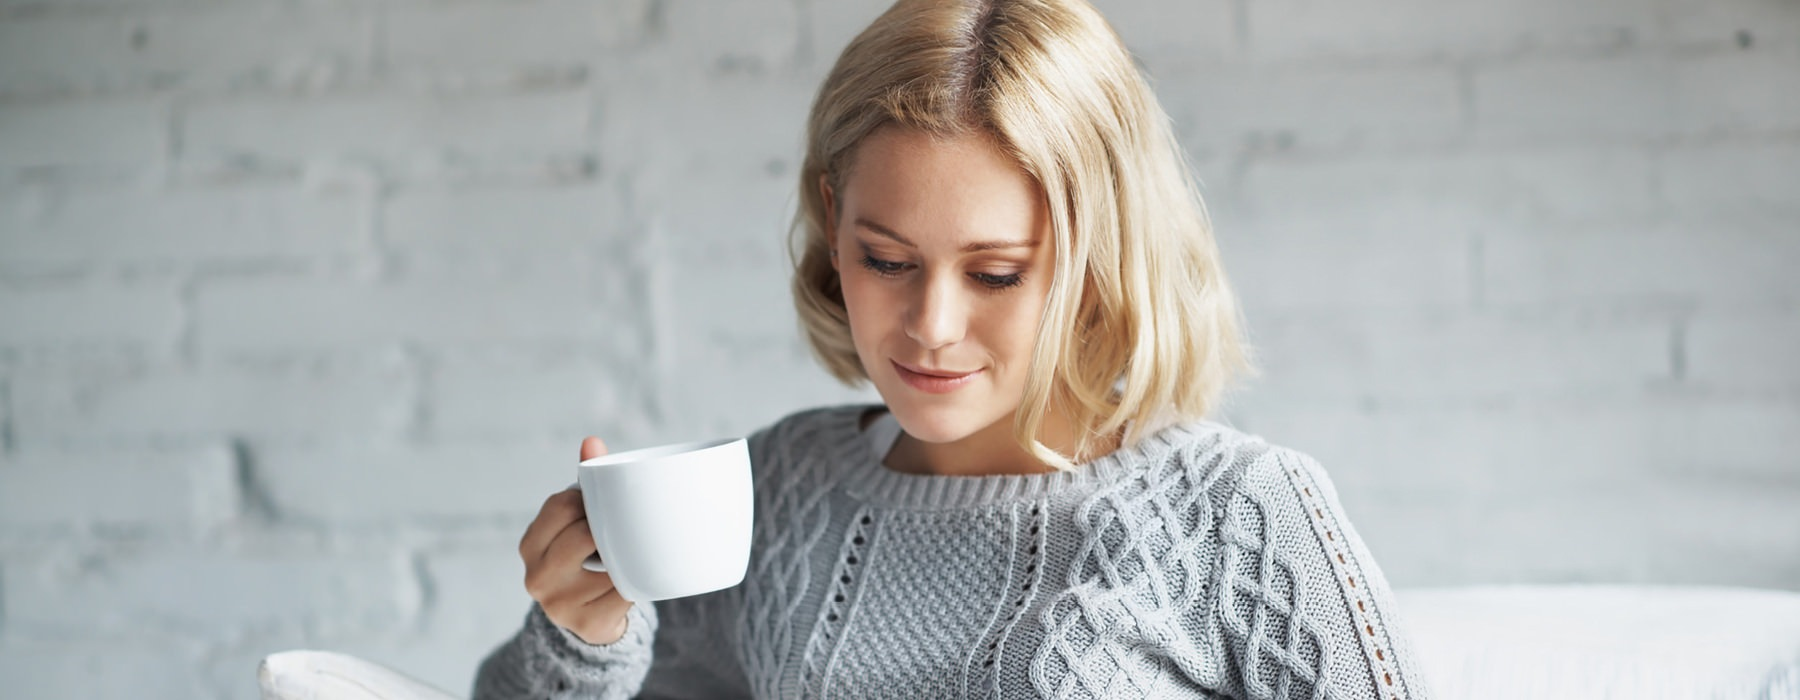 woman smiling on couch holding a cup of coffee